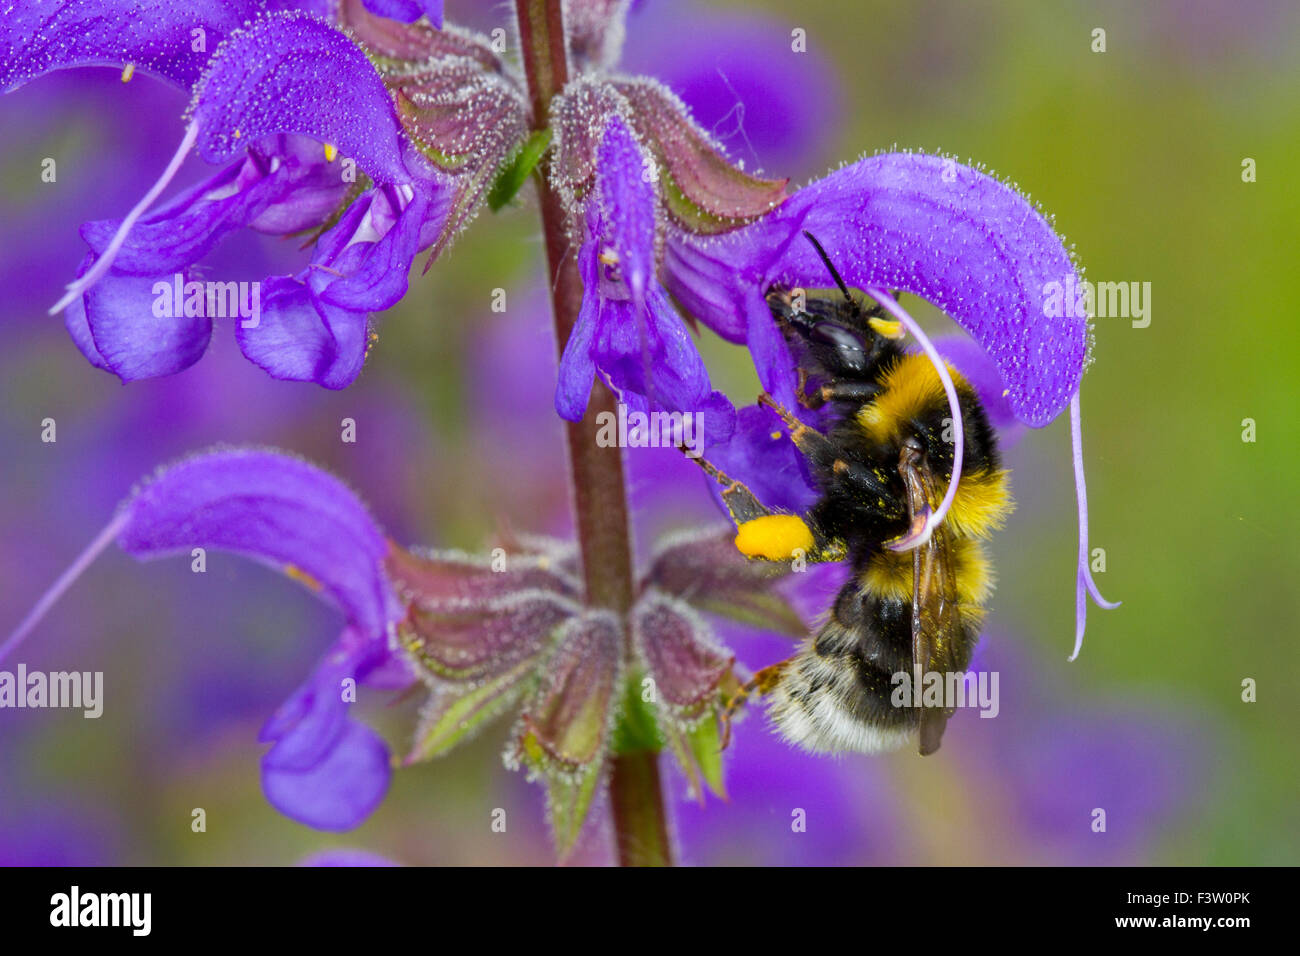 Garden Bumblebee (Bombus hortorum) adult worker feeding on a Meadow Clary (Salvia pratensis) flower. France. - Stock Image